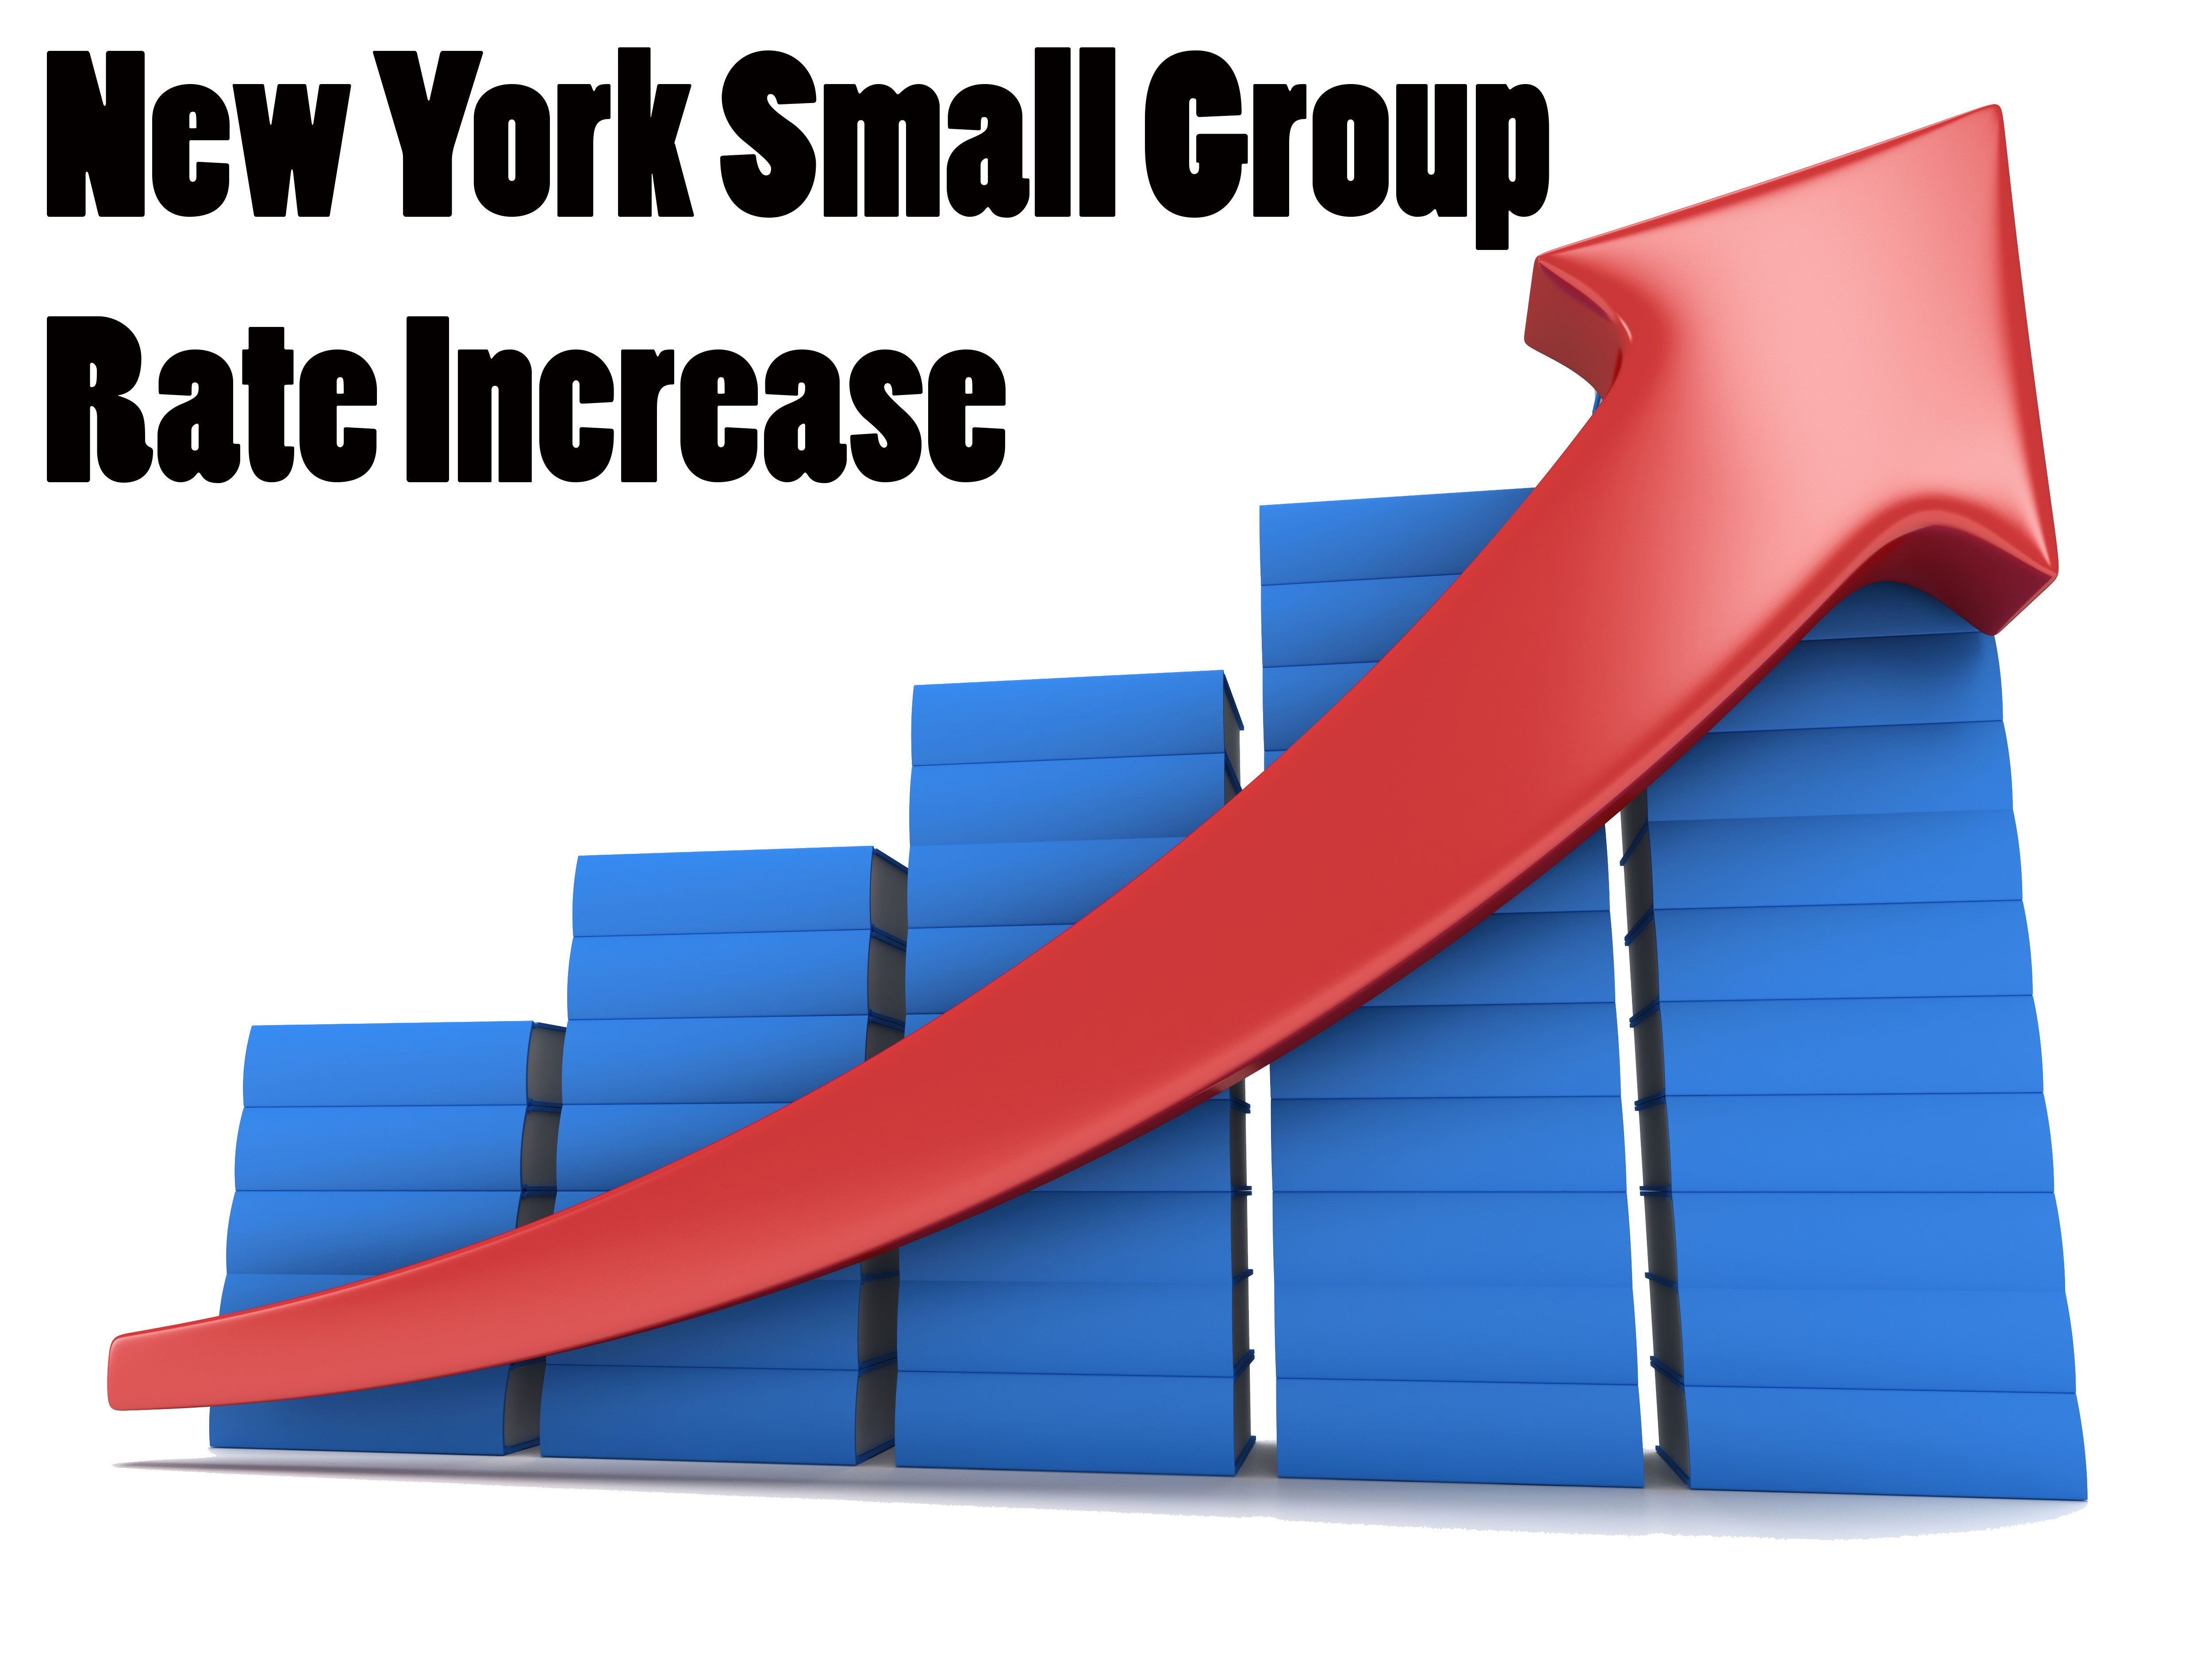 New York Small Group Rate Increases | Business Planning ...